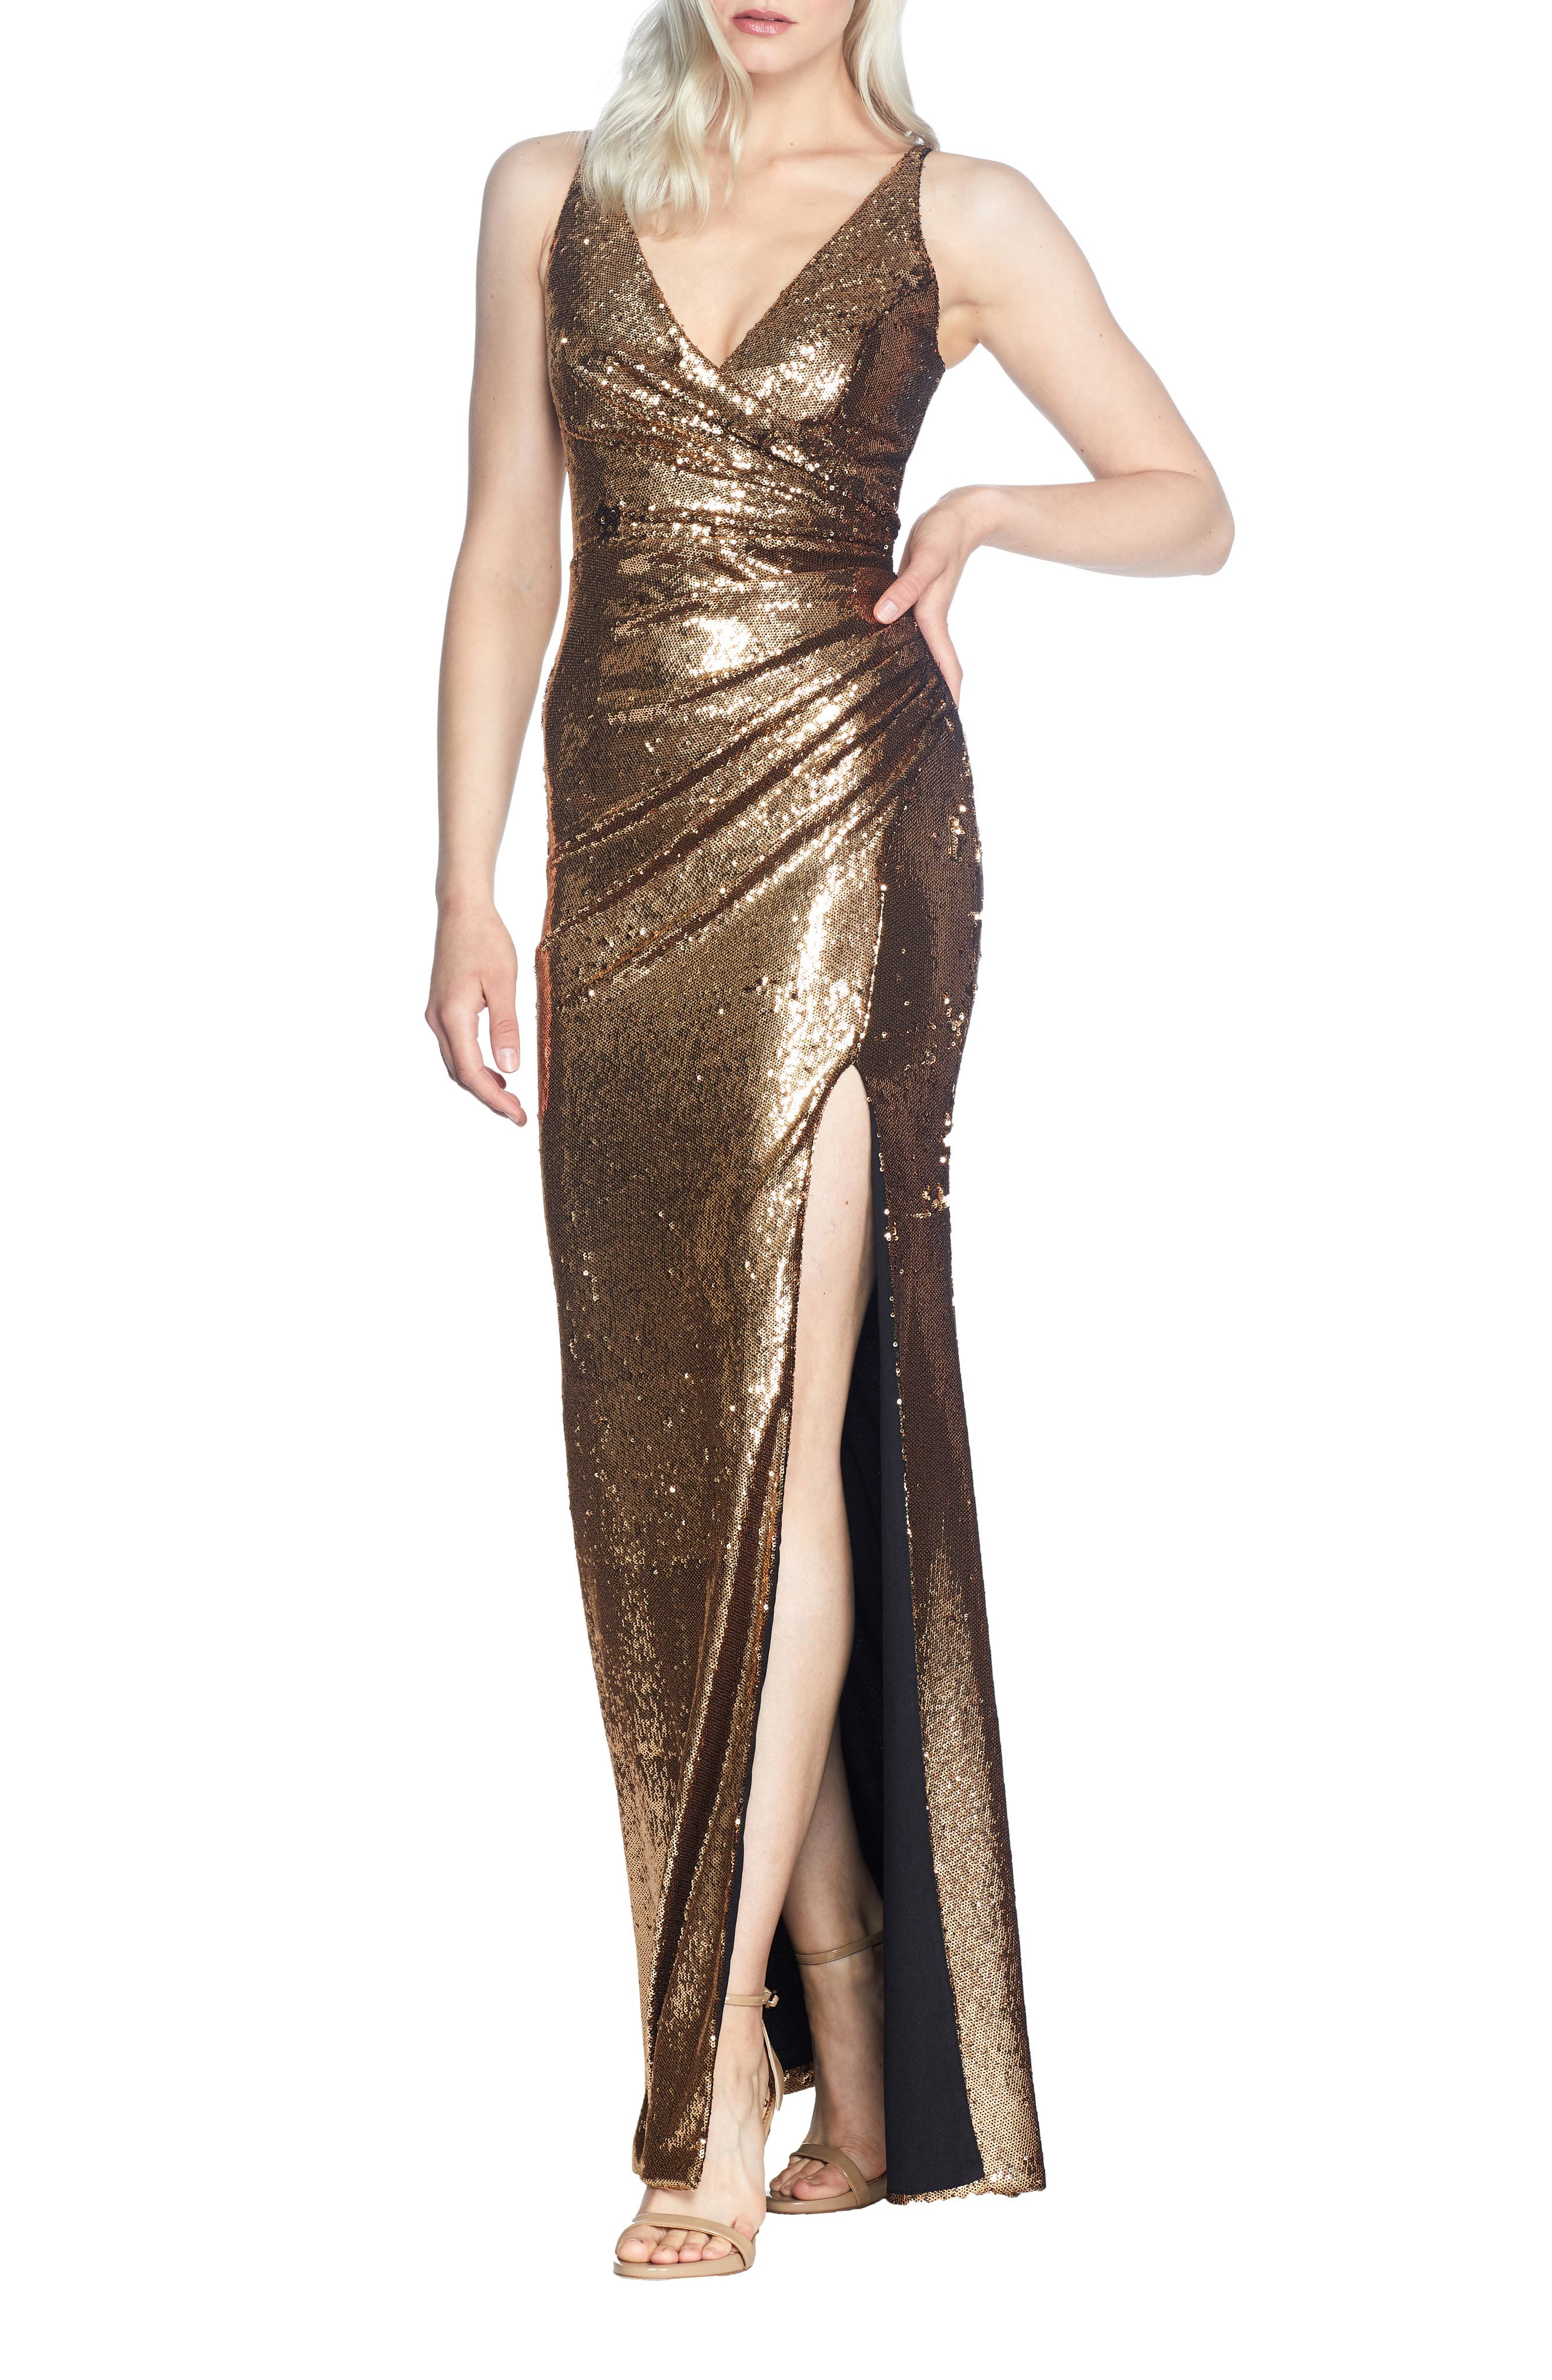 70s Prom, Formal, Evening, Party Dresses Womens Dress The Population Jordan Ruched Mermaid Gown $208.80 AT vintagedancer.com